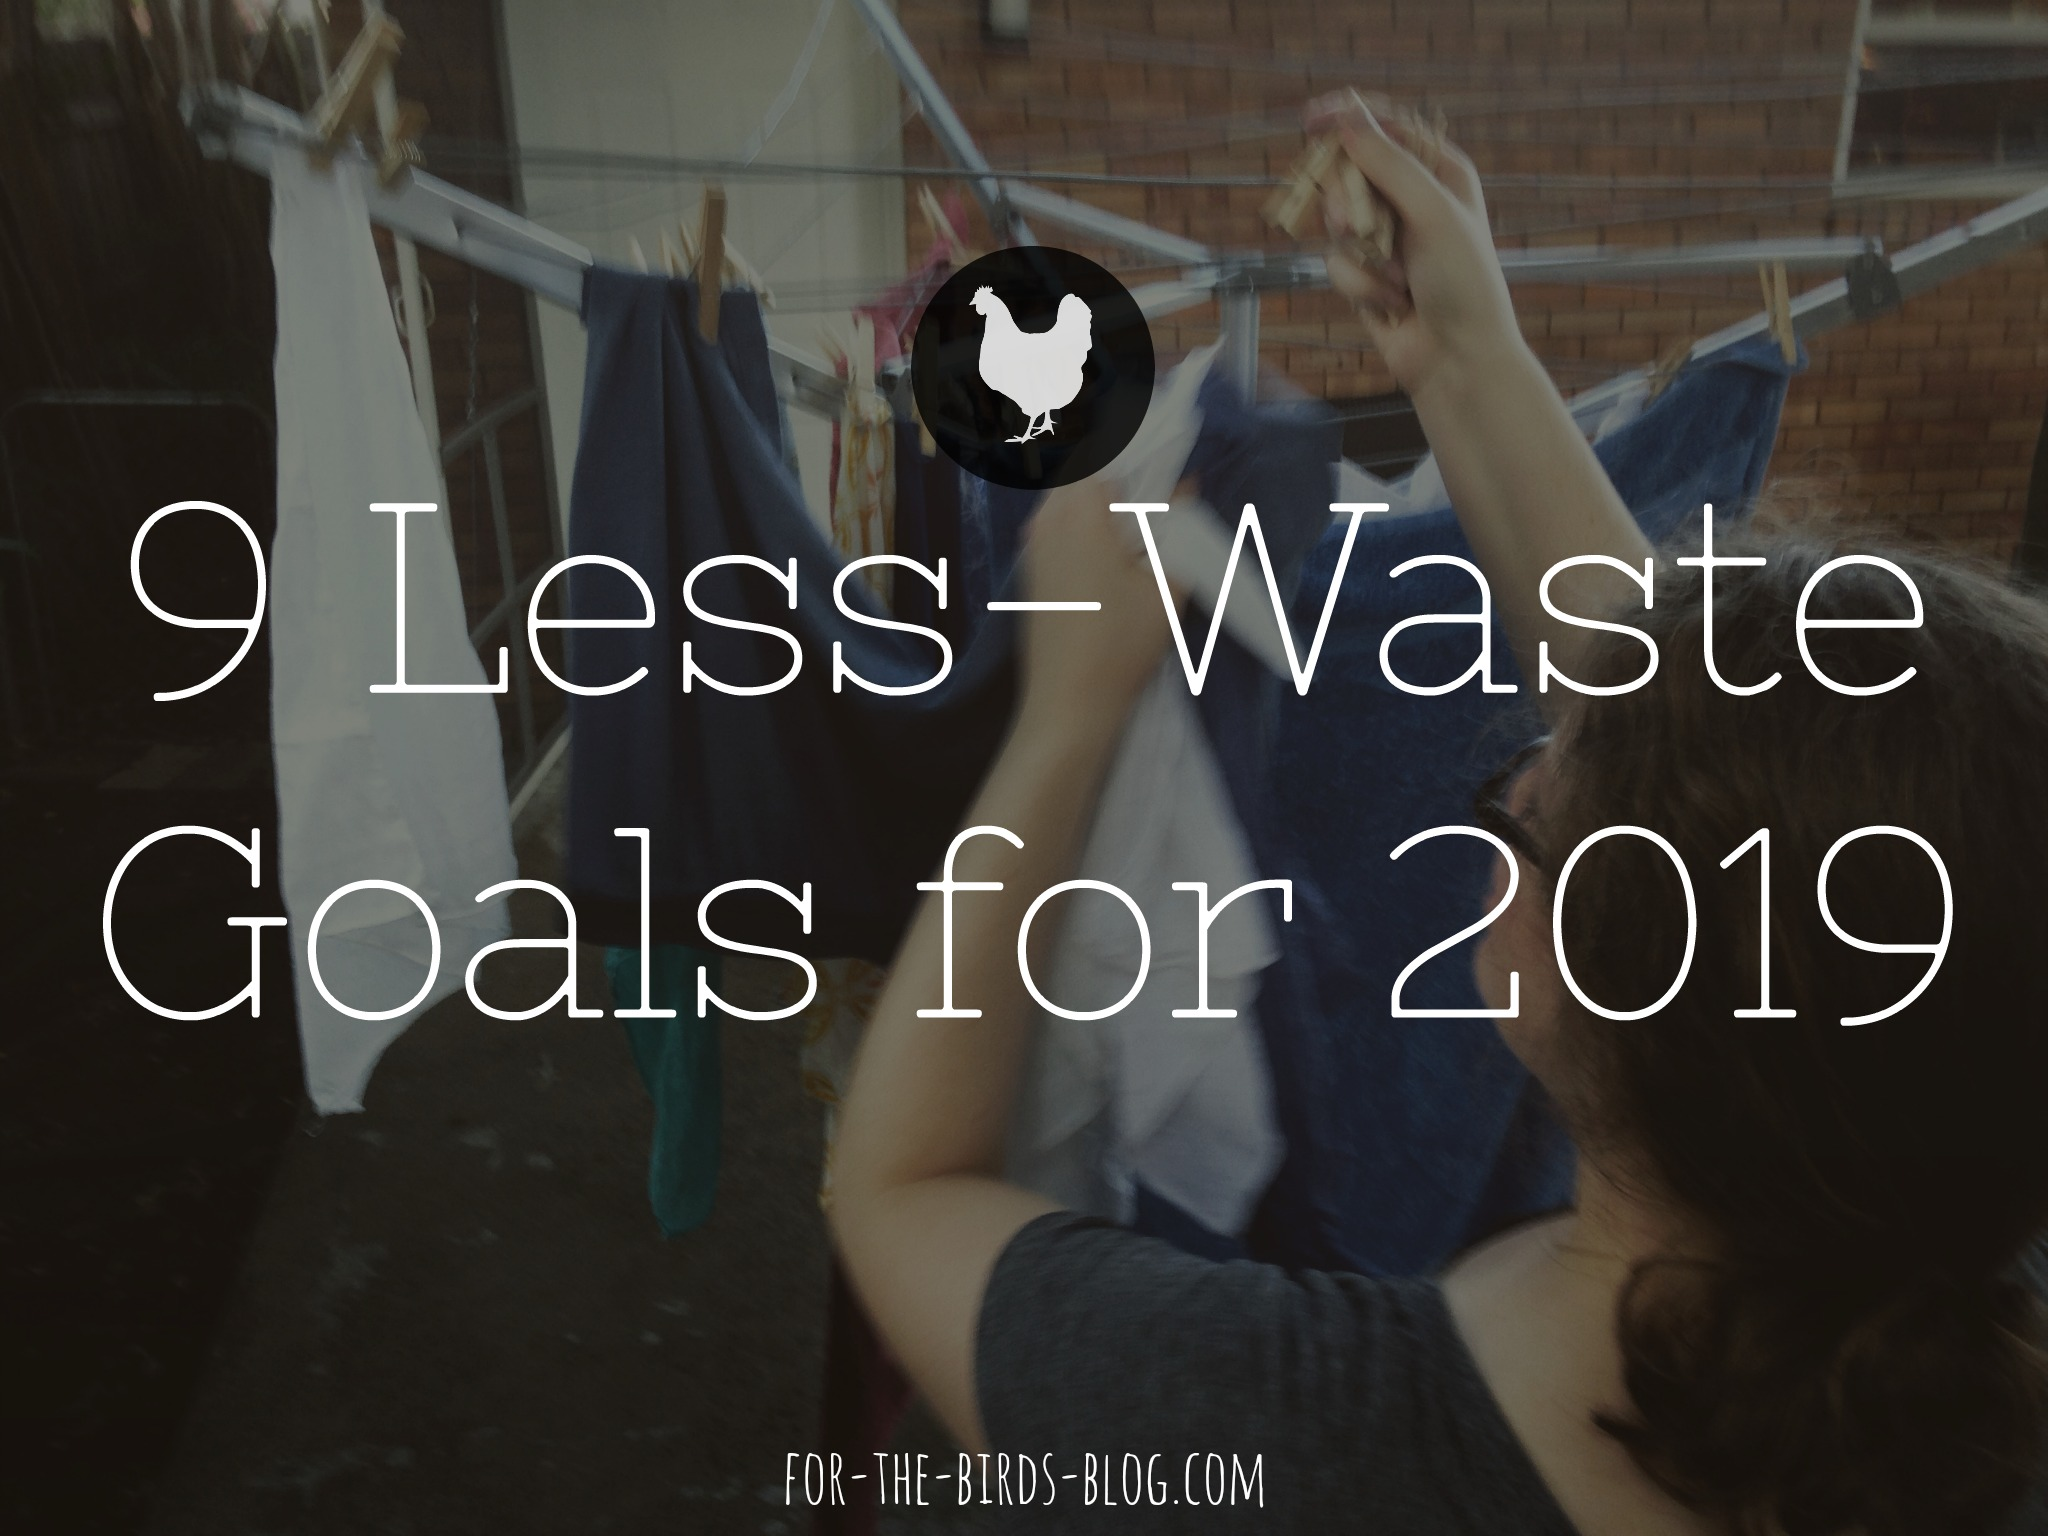 9 Less-Waste Goals for 2019 - For the Birds - by Leanna Coyle-Carr